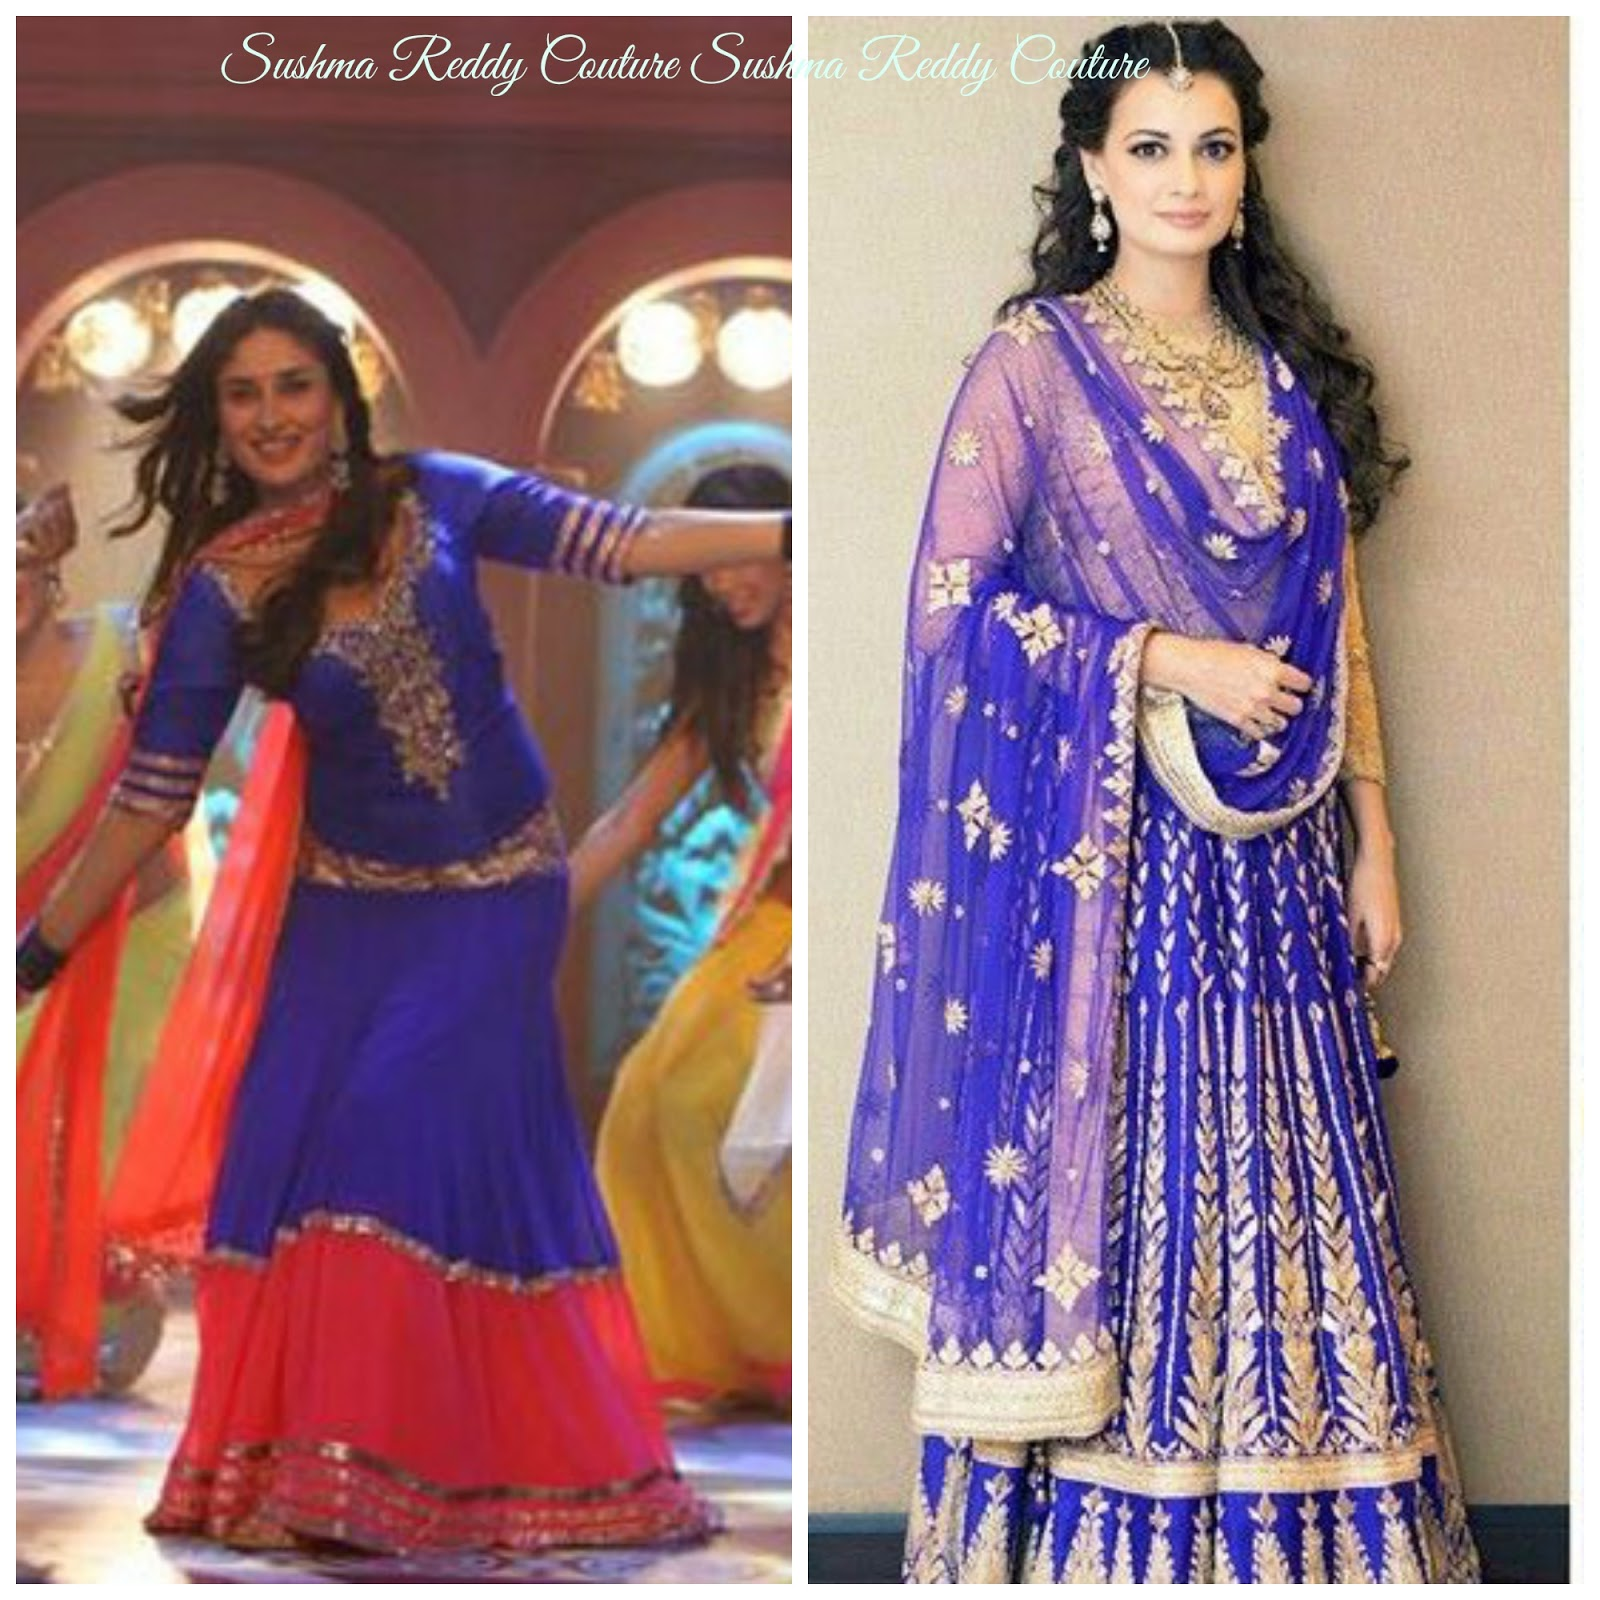 What to wear to your sister\'s wedding/reception? | Sushma Reddy Couture